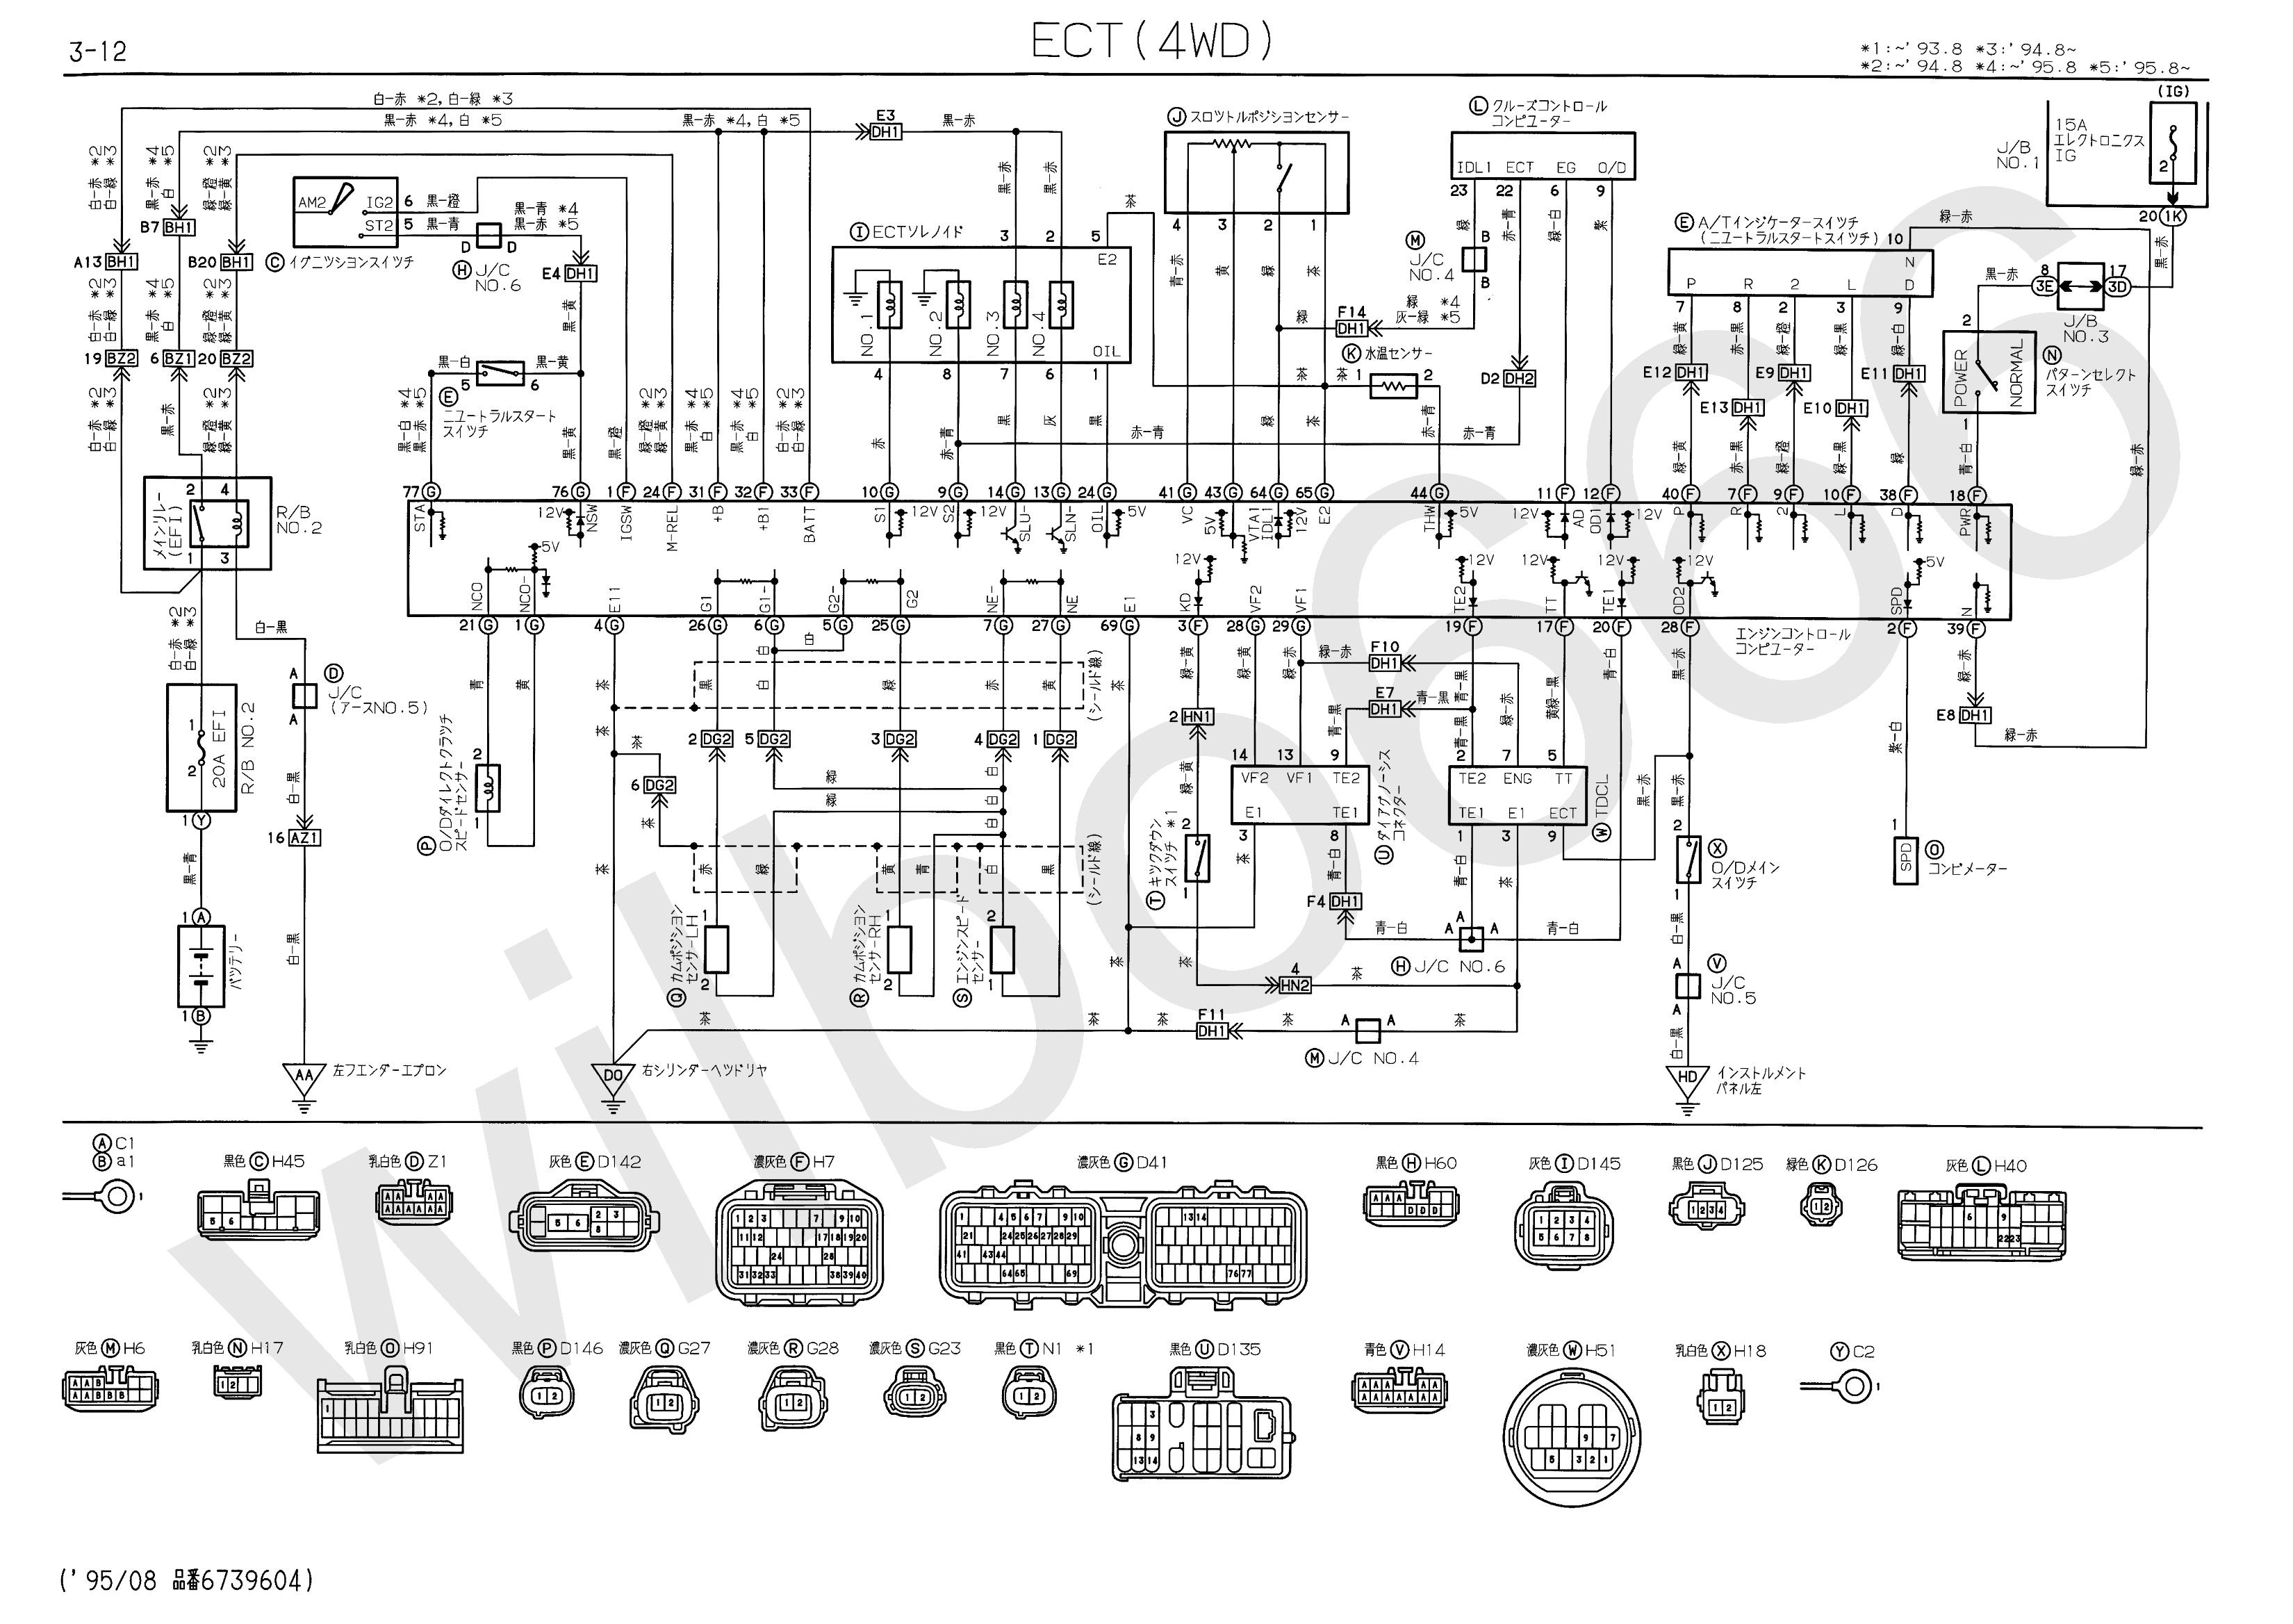 JZS14%23%2C UZS14%23 Electrical Wiring Diagram 6739604 3 12?resize\\\\\\\\\\\\\\\\\\\\\\\\\\\\\\\\\\\\\\\\\\\\\\\\\\\\\\\\\\\\\\\\\\\\\\\\\\\\\\\\\\\\\\\\\\\\\\\\\\\\\\\\\\\\\=665%2C471 1976 datsun 280z wiring diagram datsun roadster wiring harness 75 280z wiring diagram at n-0.co